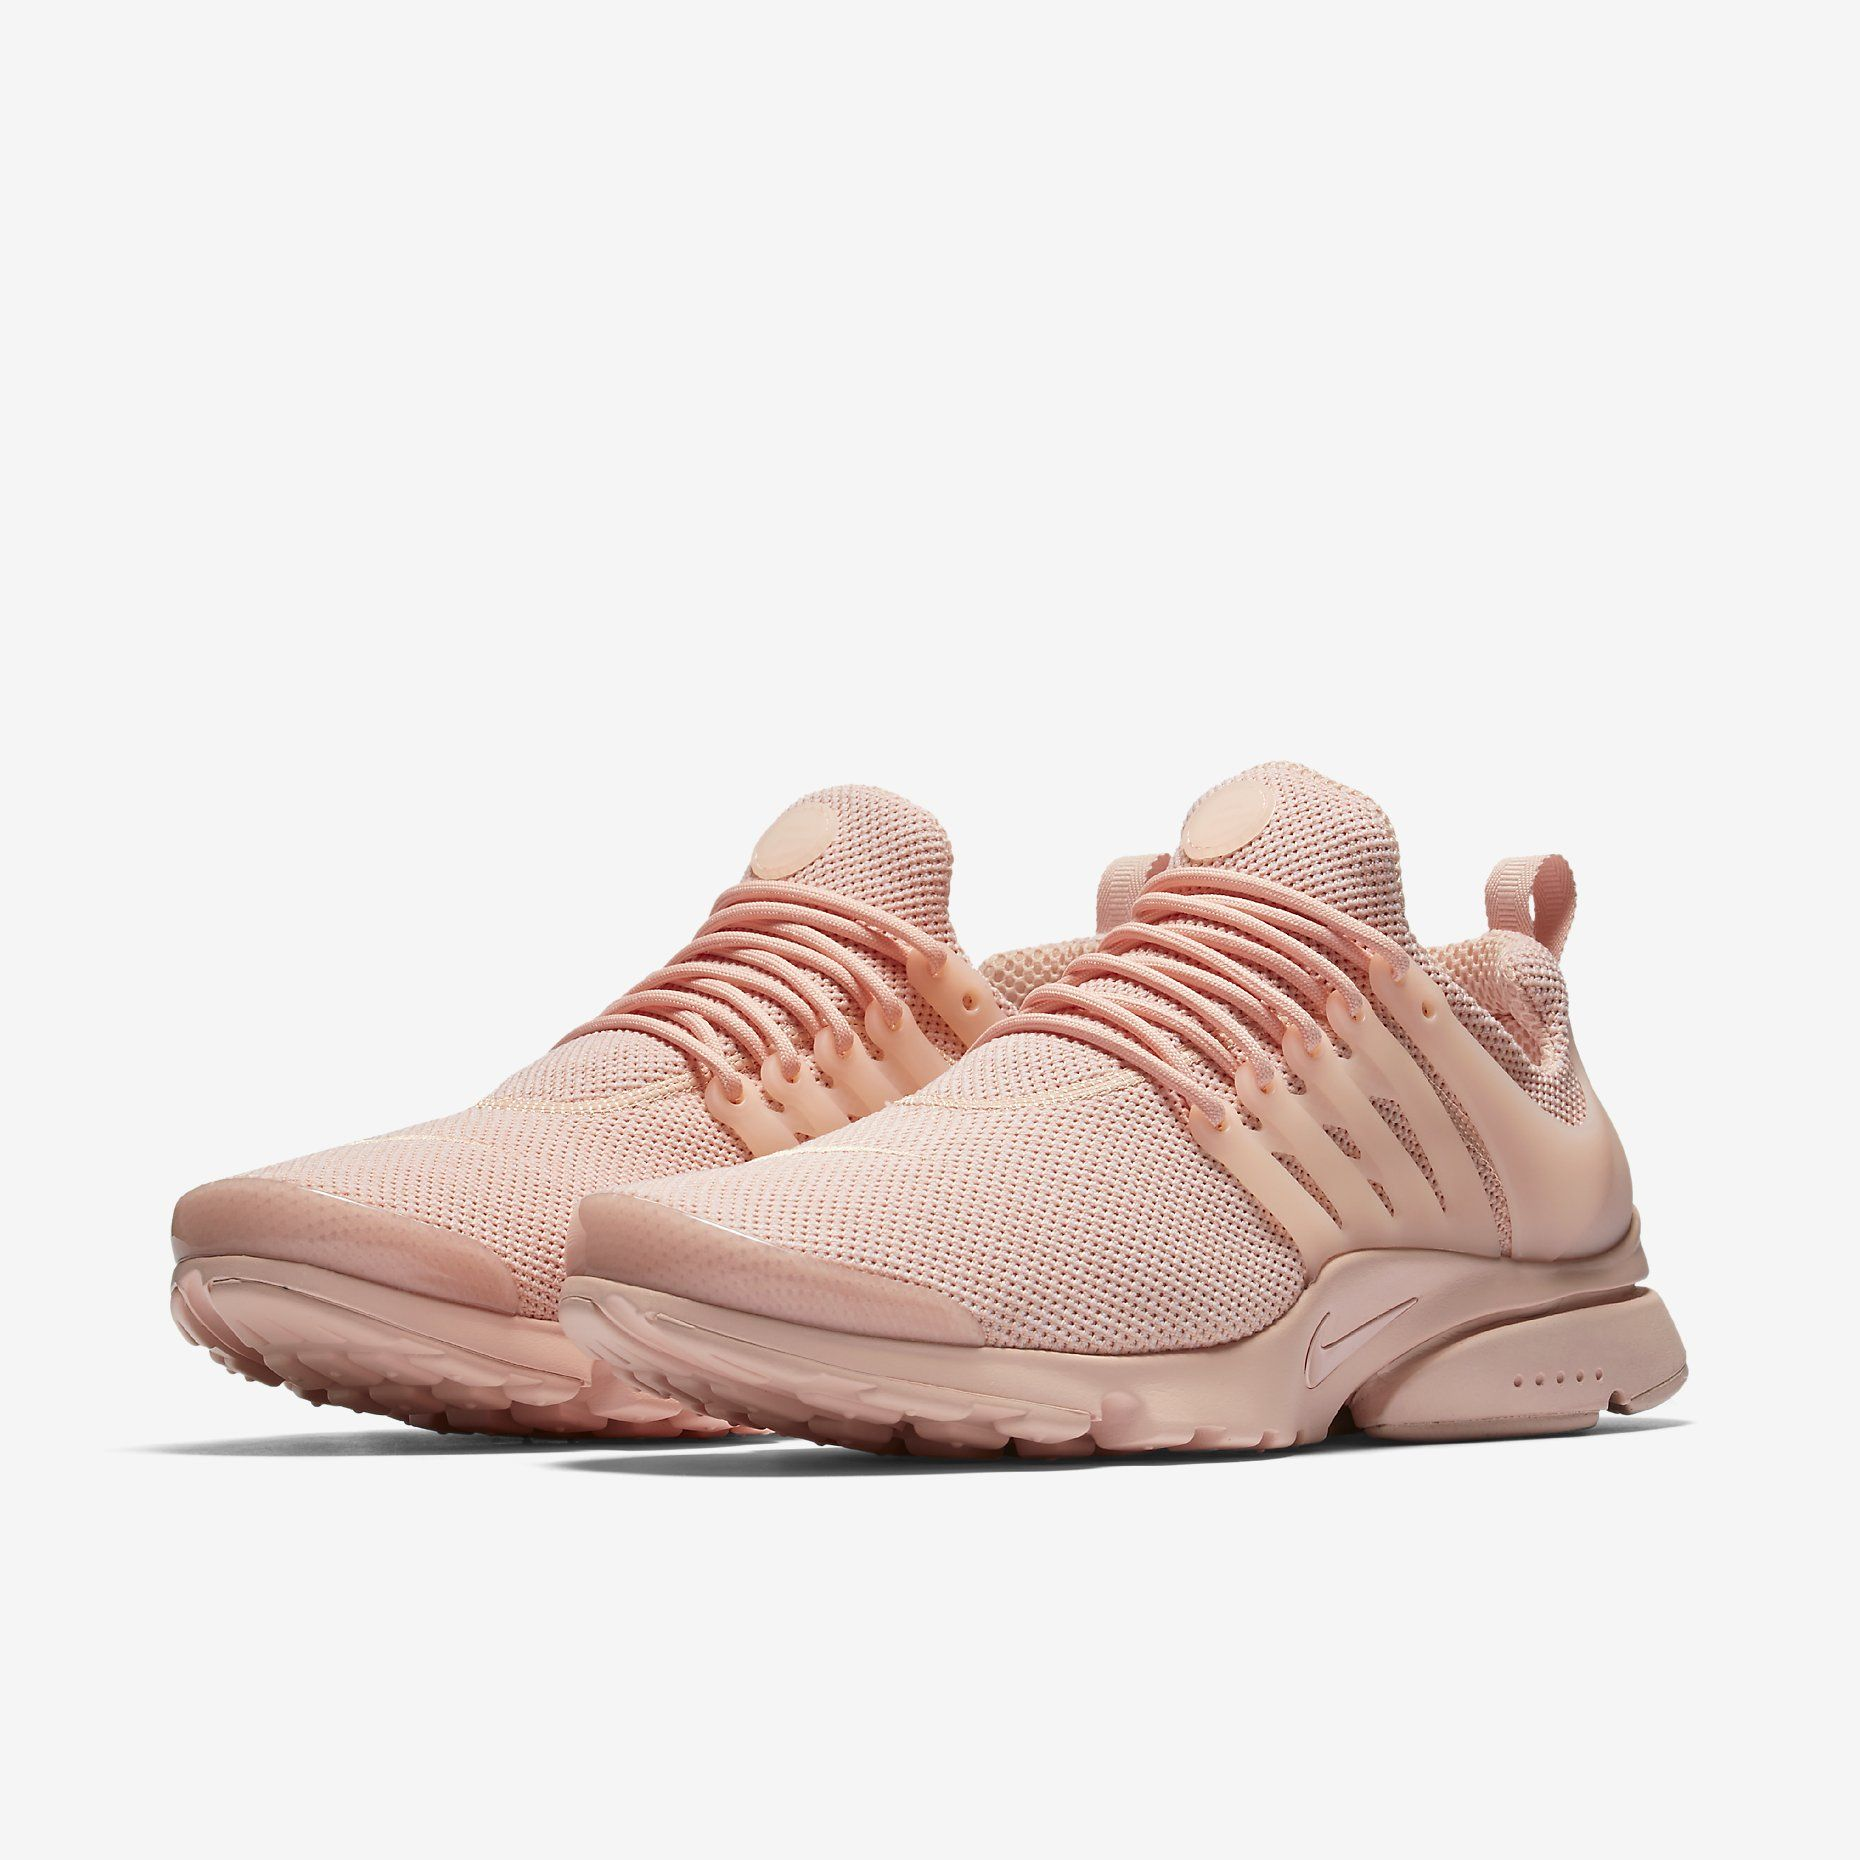 df1deb7afc47 Nike Air Presto Ultra Breathe in Arctic Orange Breathe In